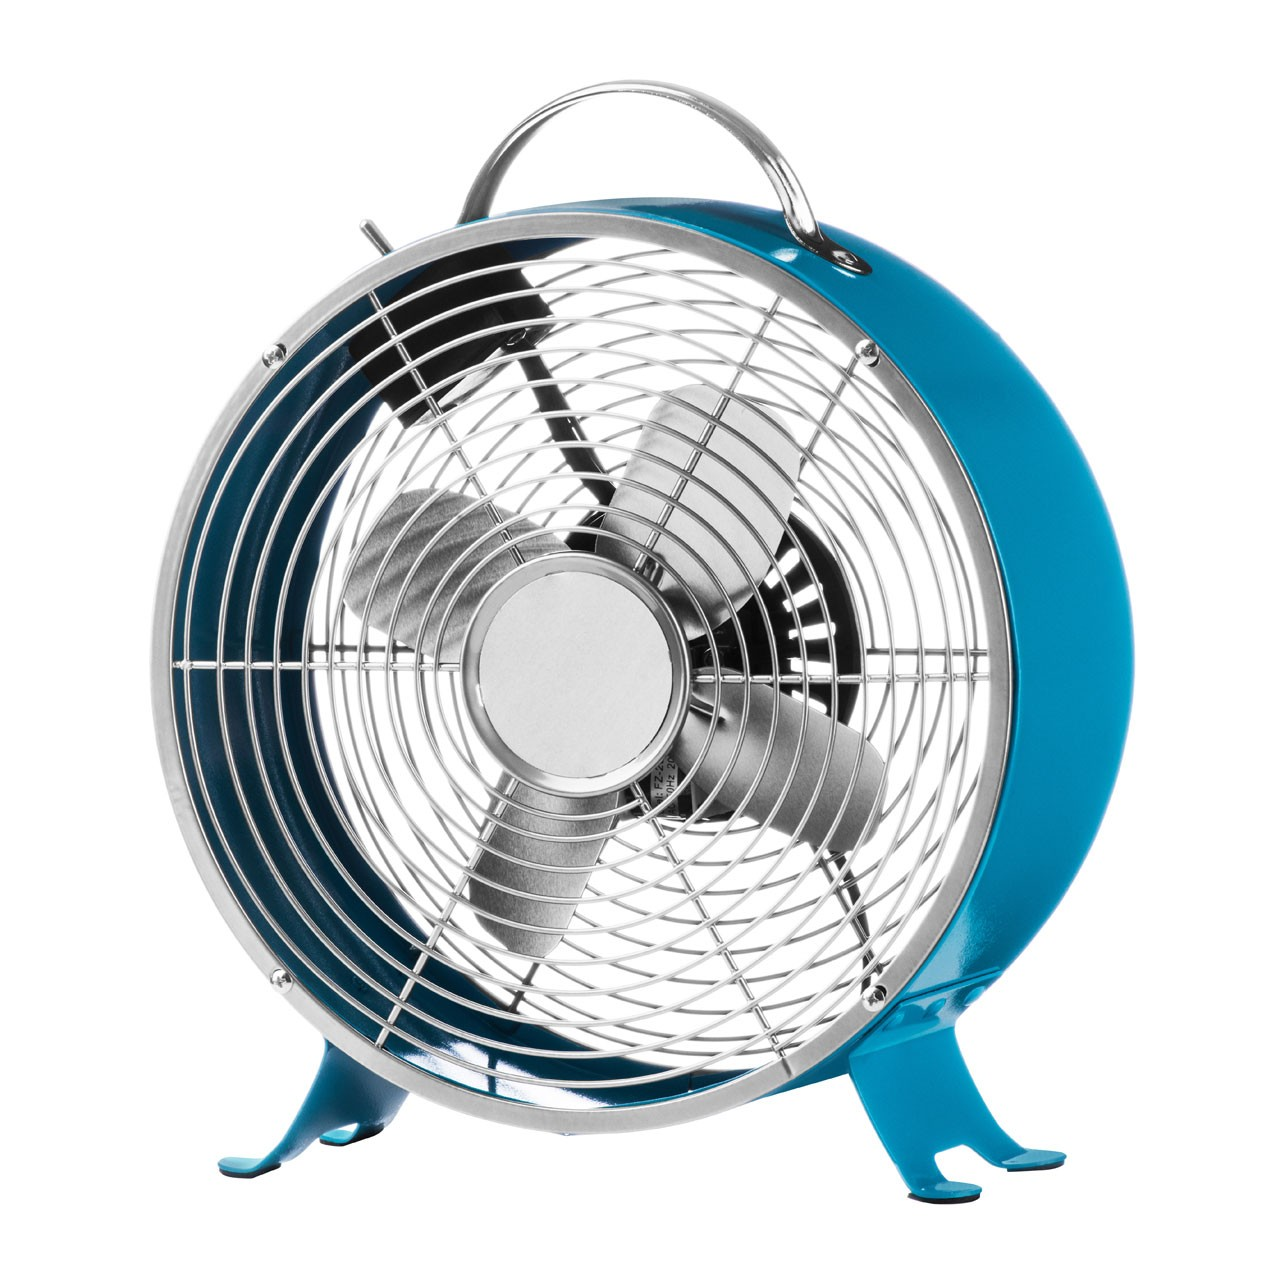 Retro Desk Fan with 2-Speeds, Blue